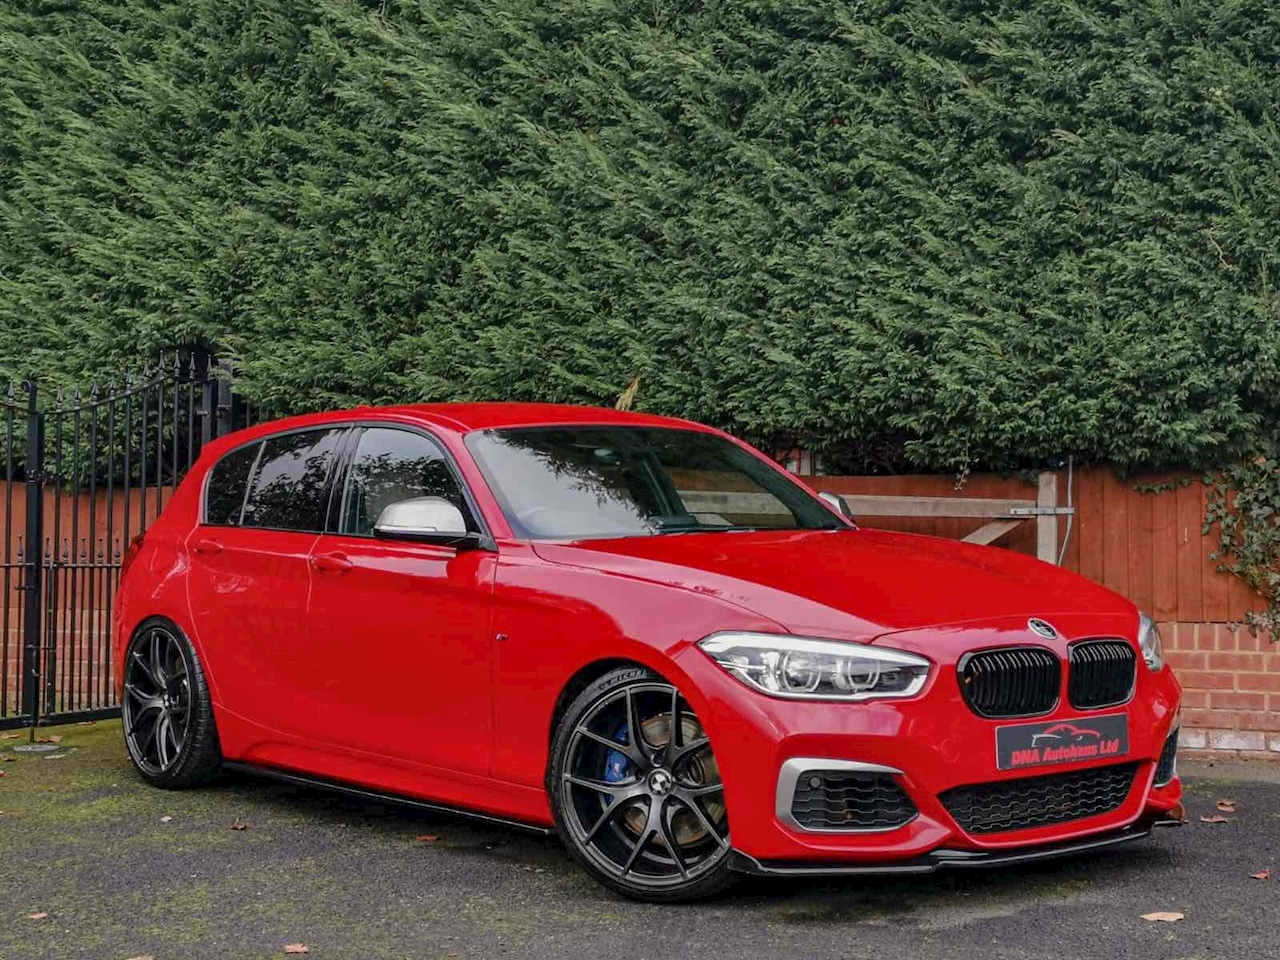 BMW 1 Series M140i 5-door Hatchback 3.0 Automatic Petrol